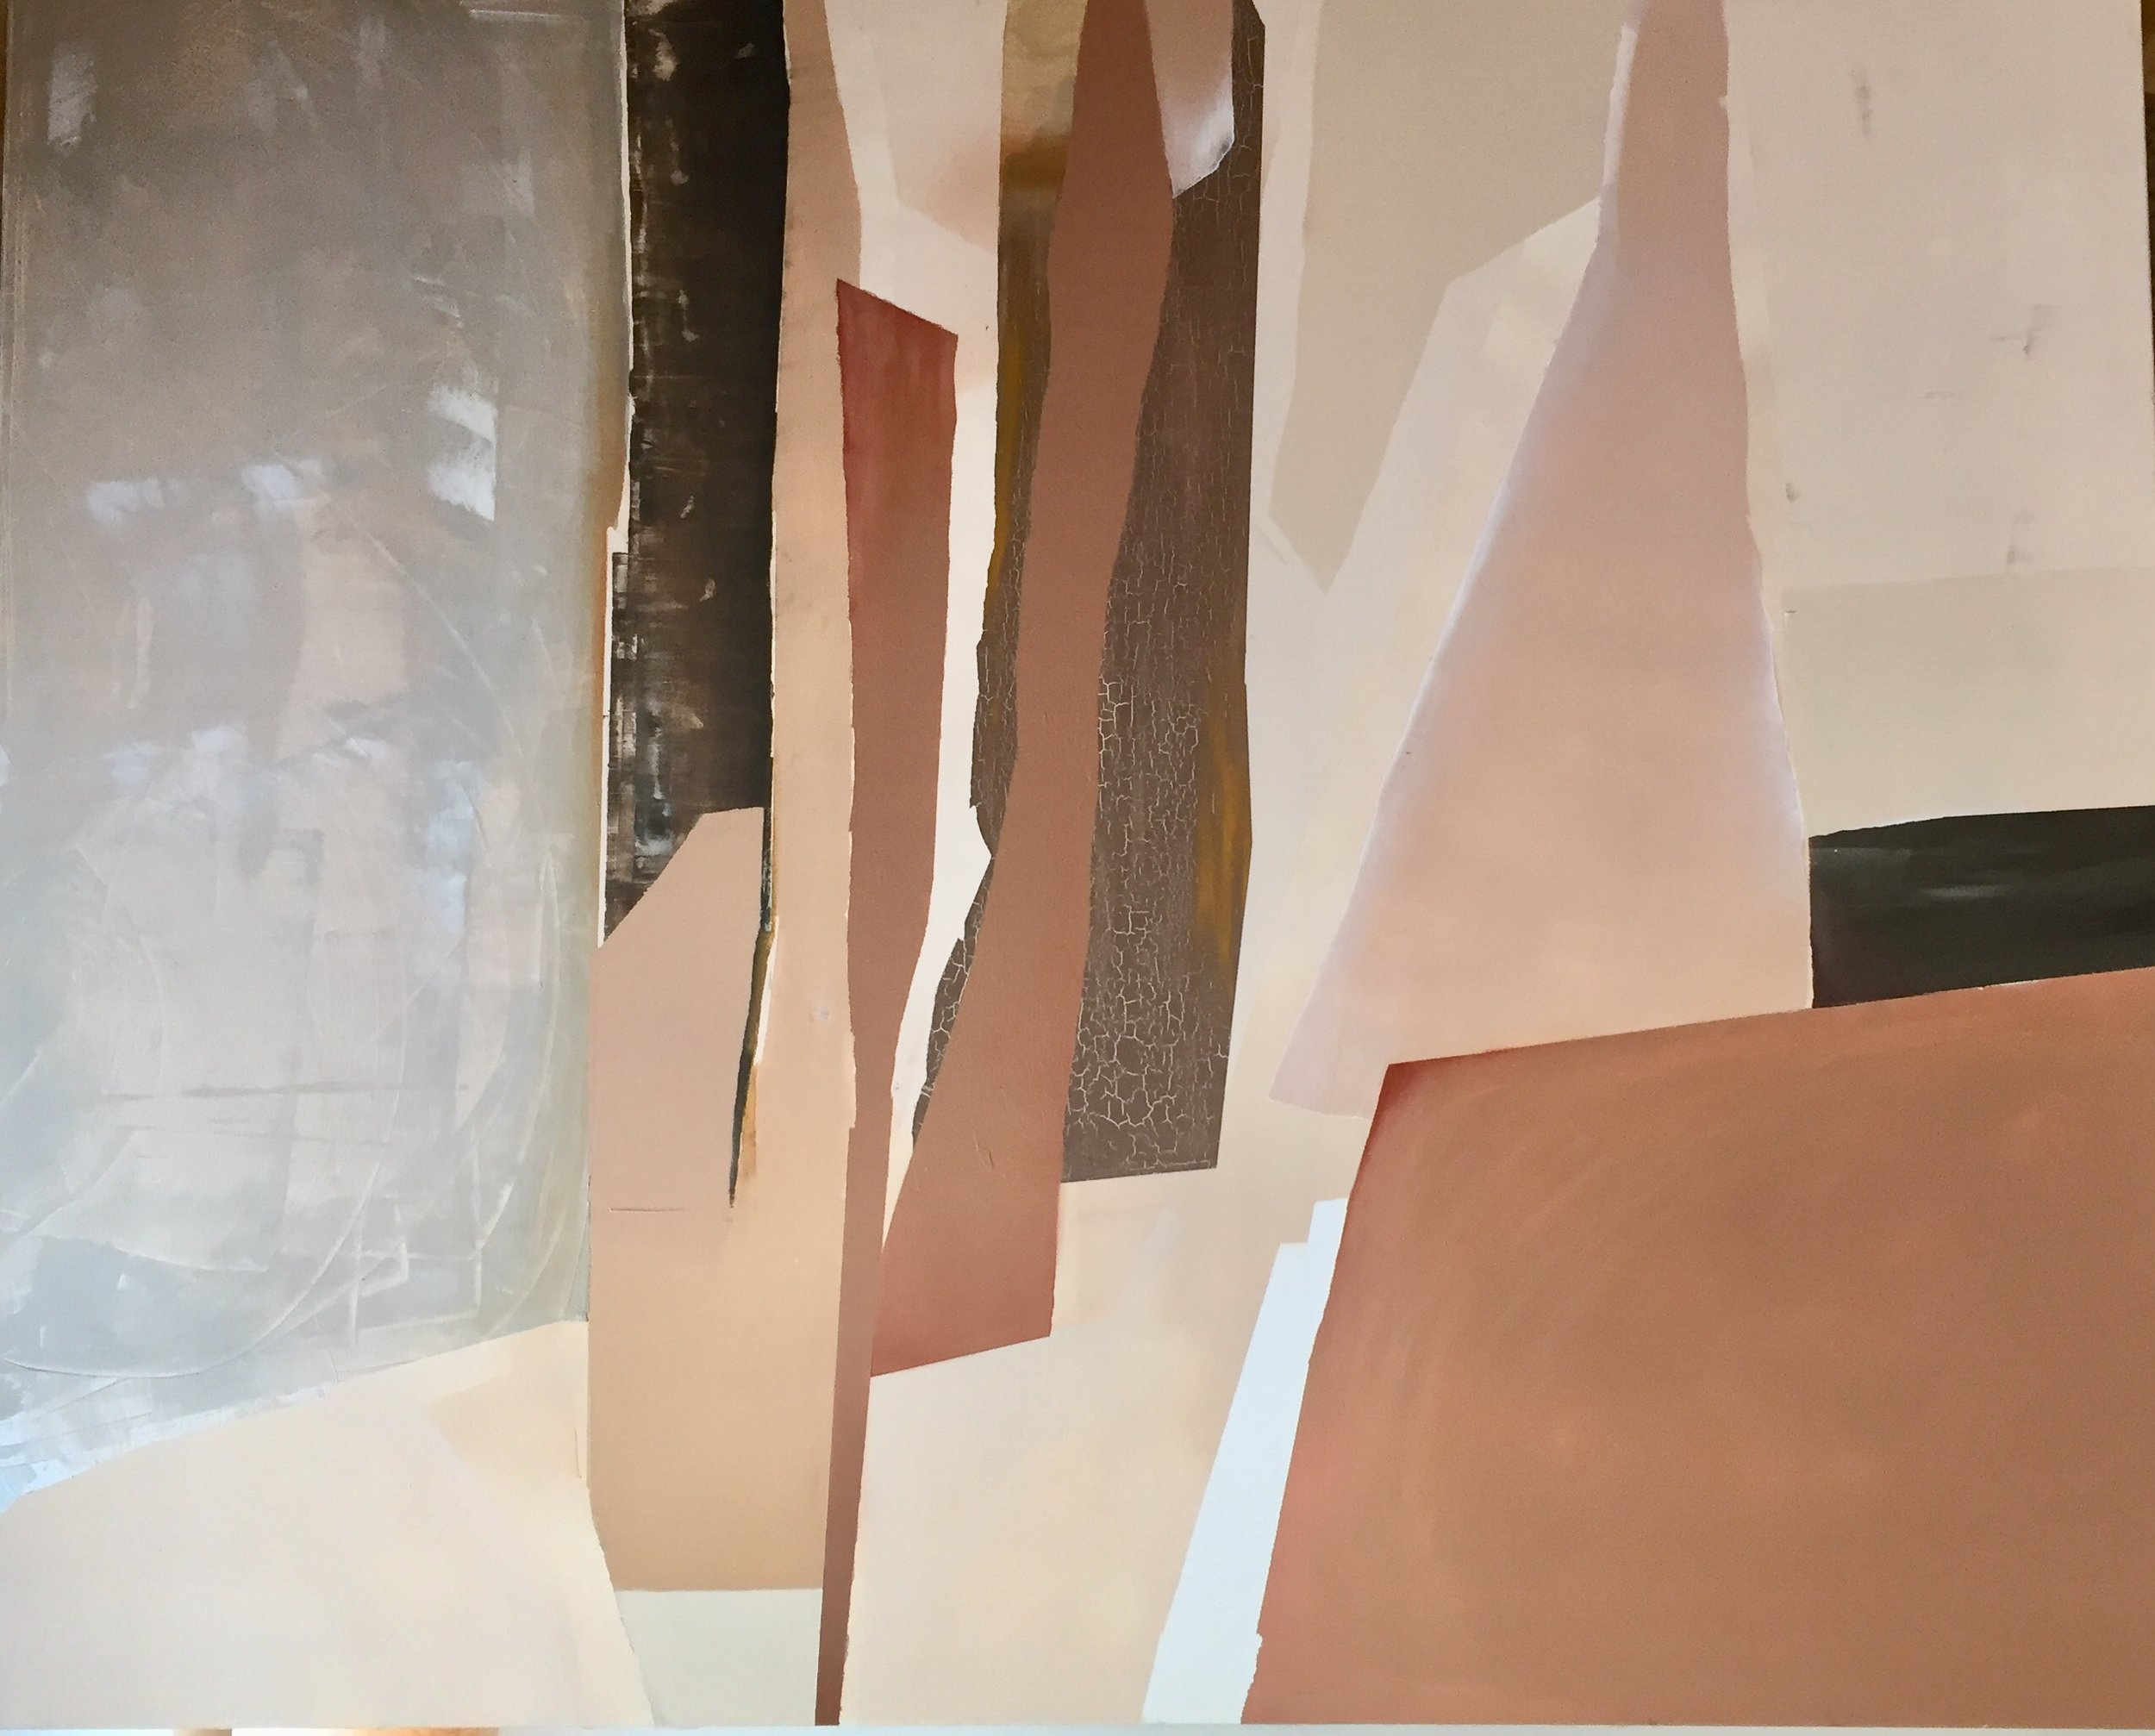 'Canyon Concepts' | 5 ft x 4 ft | spray paint, acrylic, oil crayon, oil pastel on linen